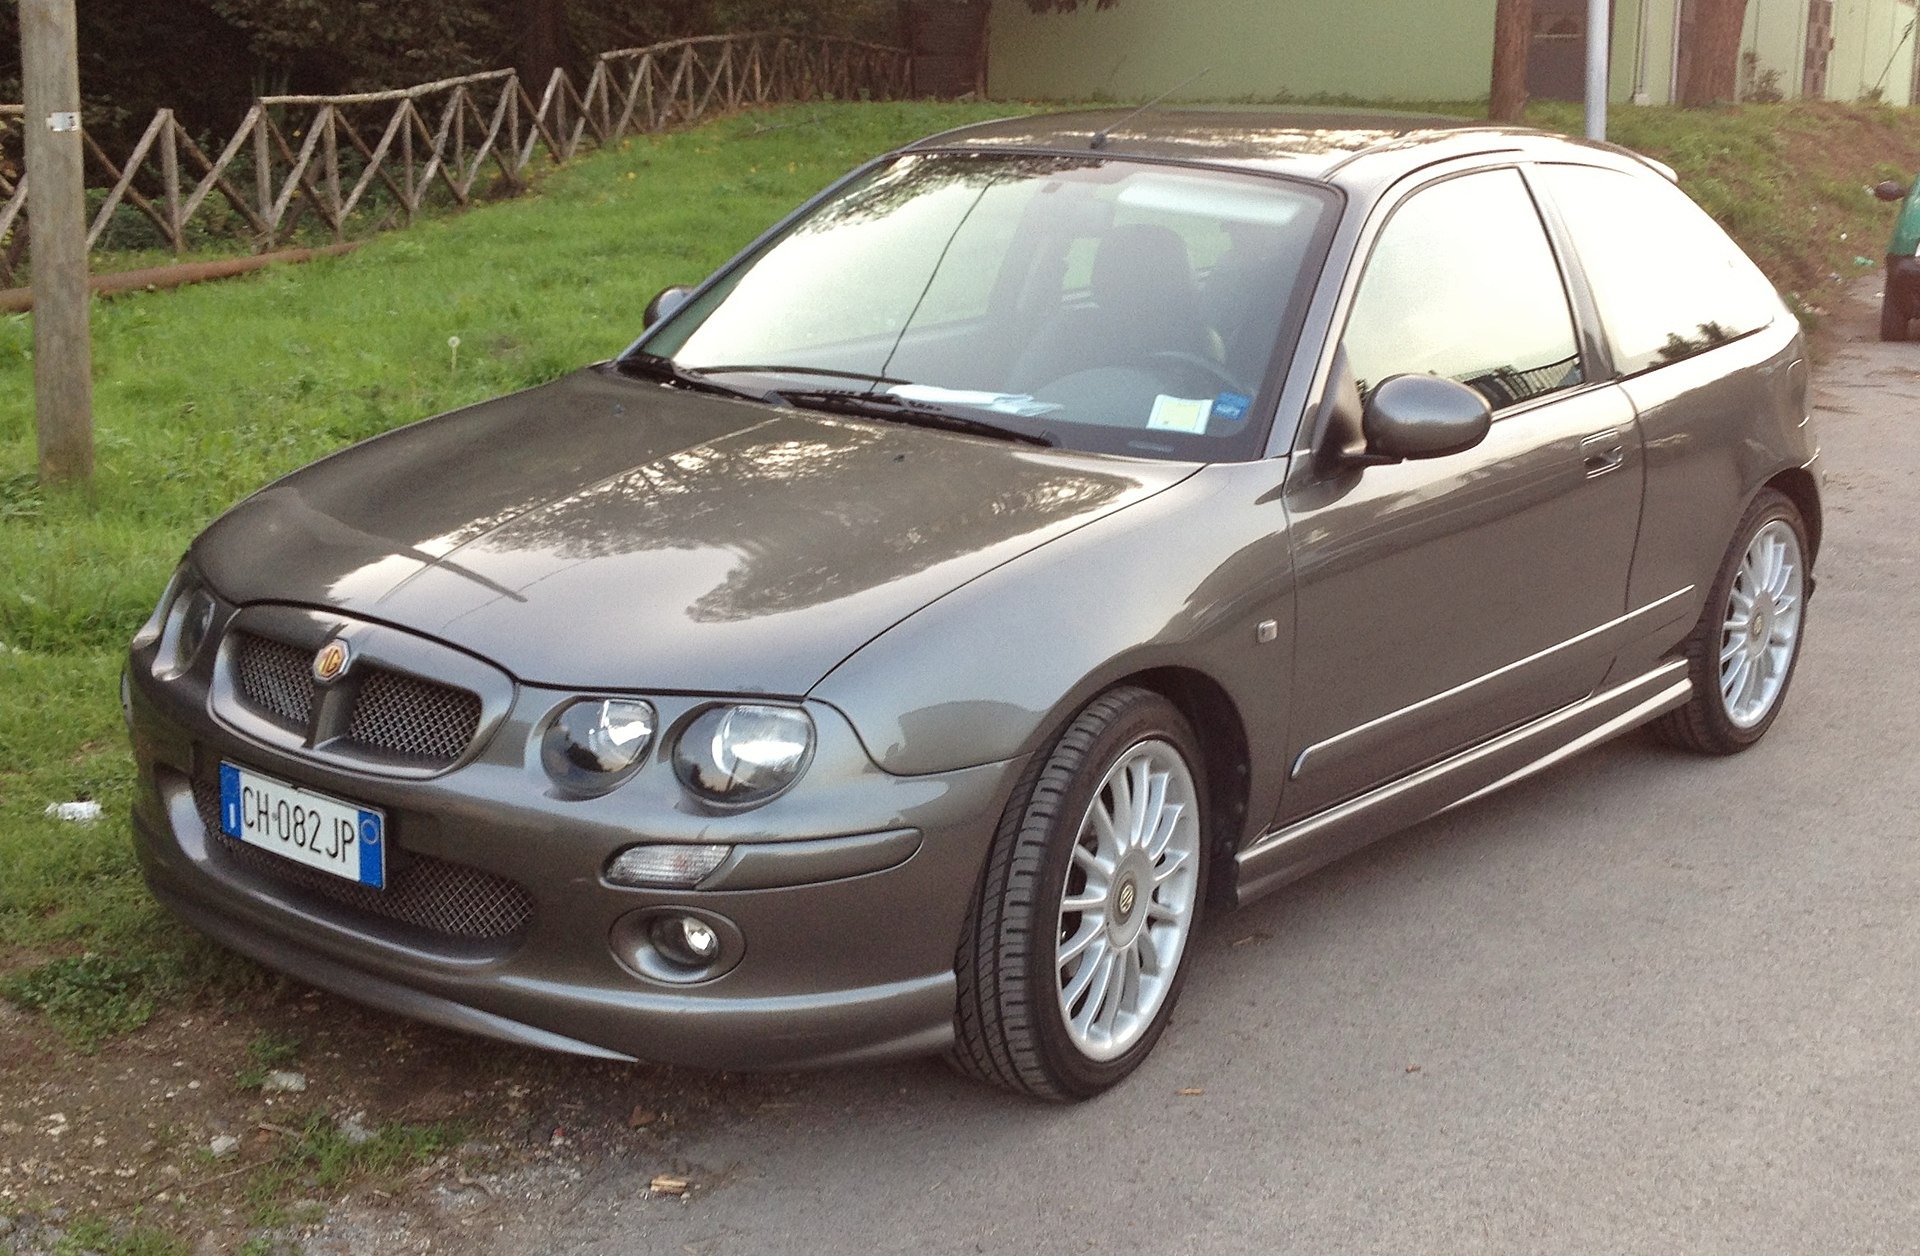 mg zr 1.4 review